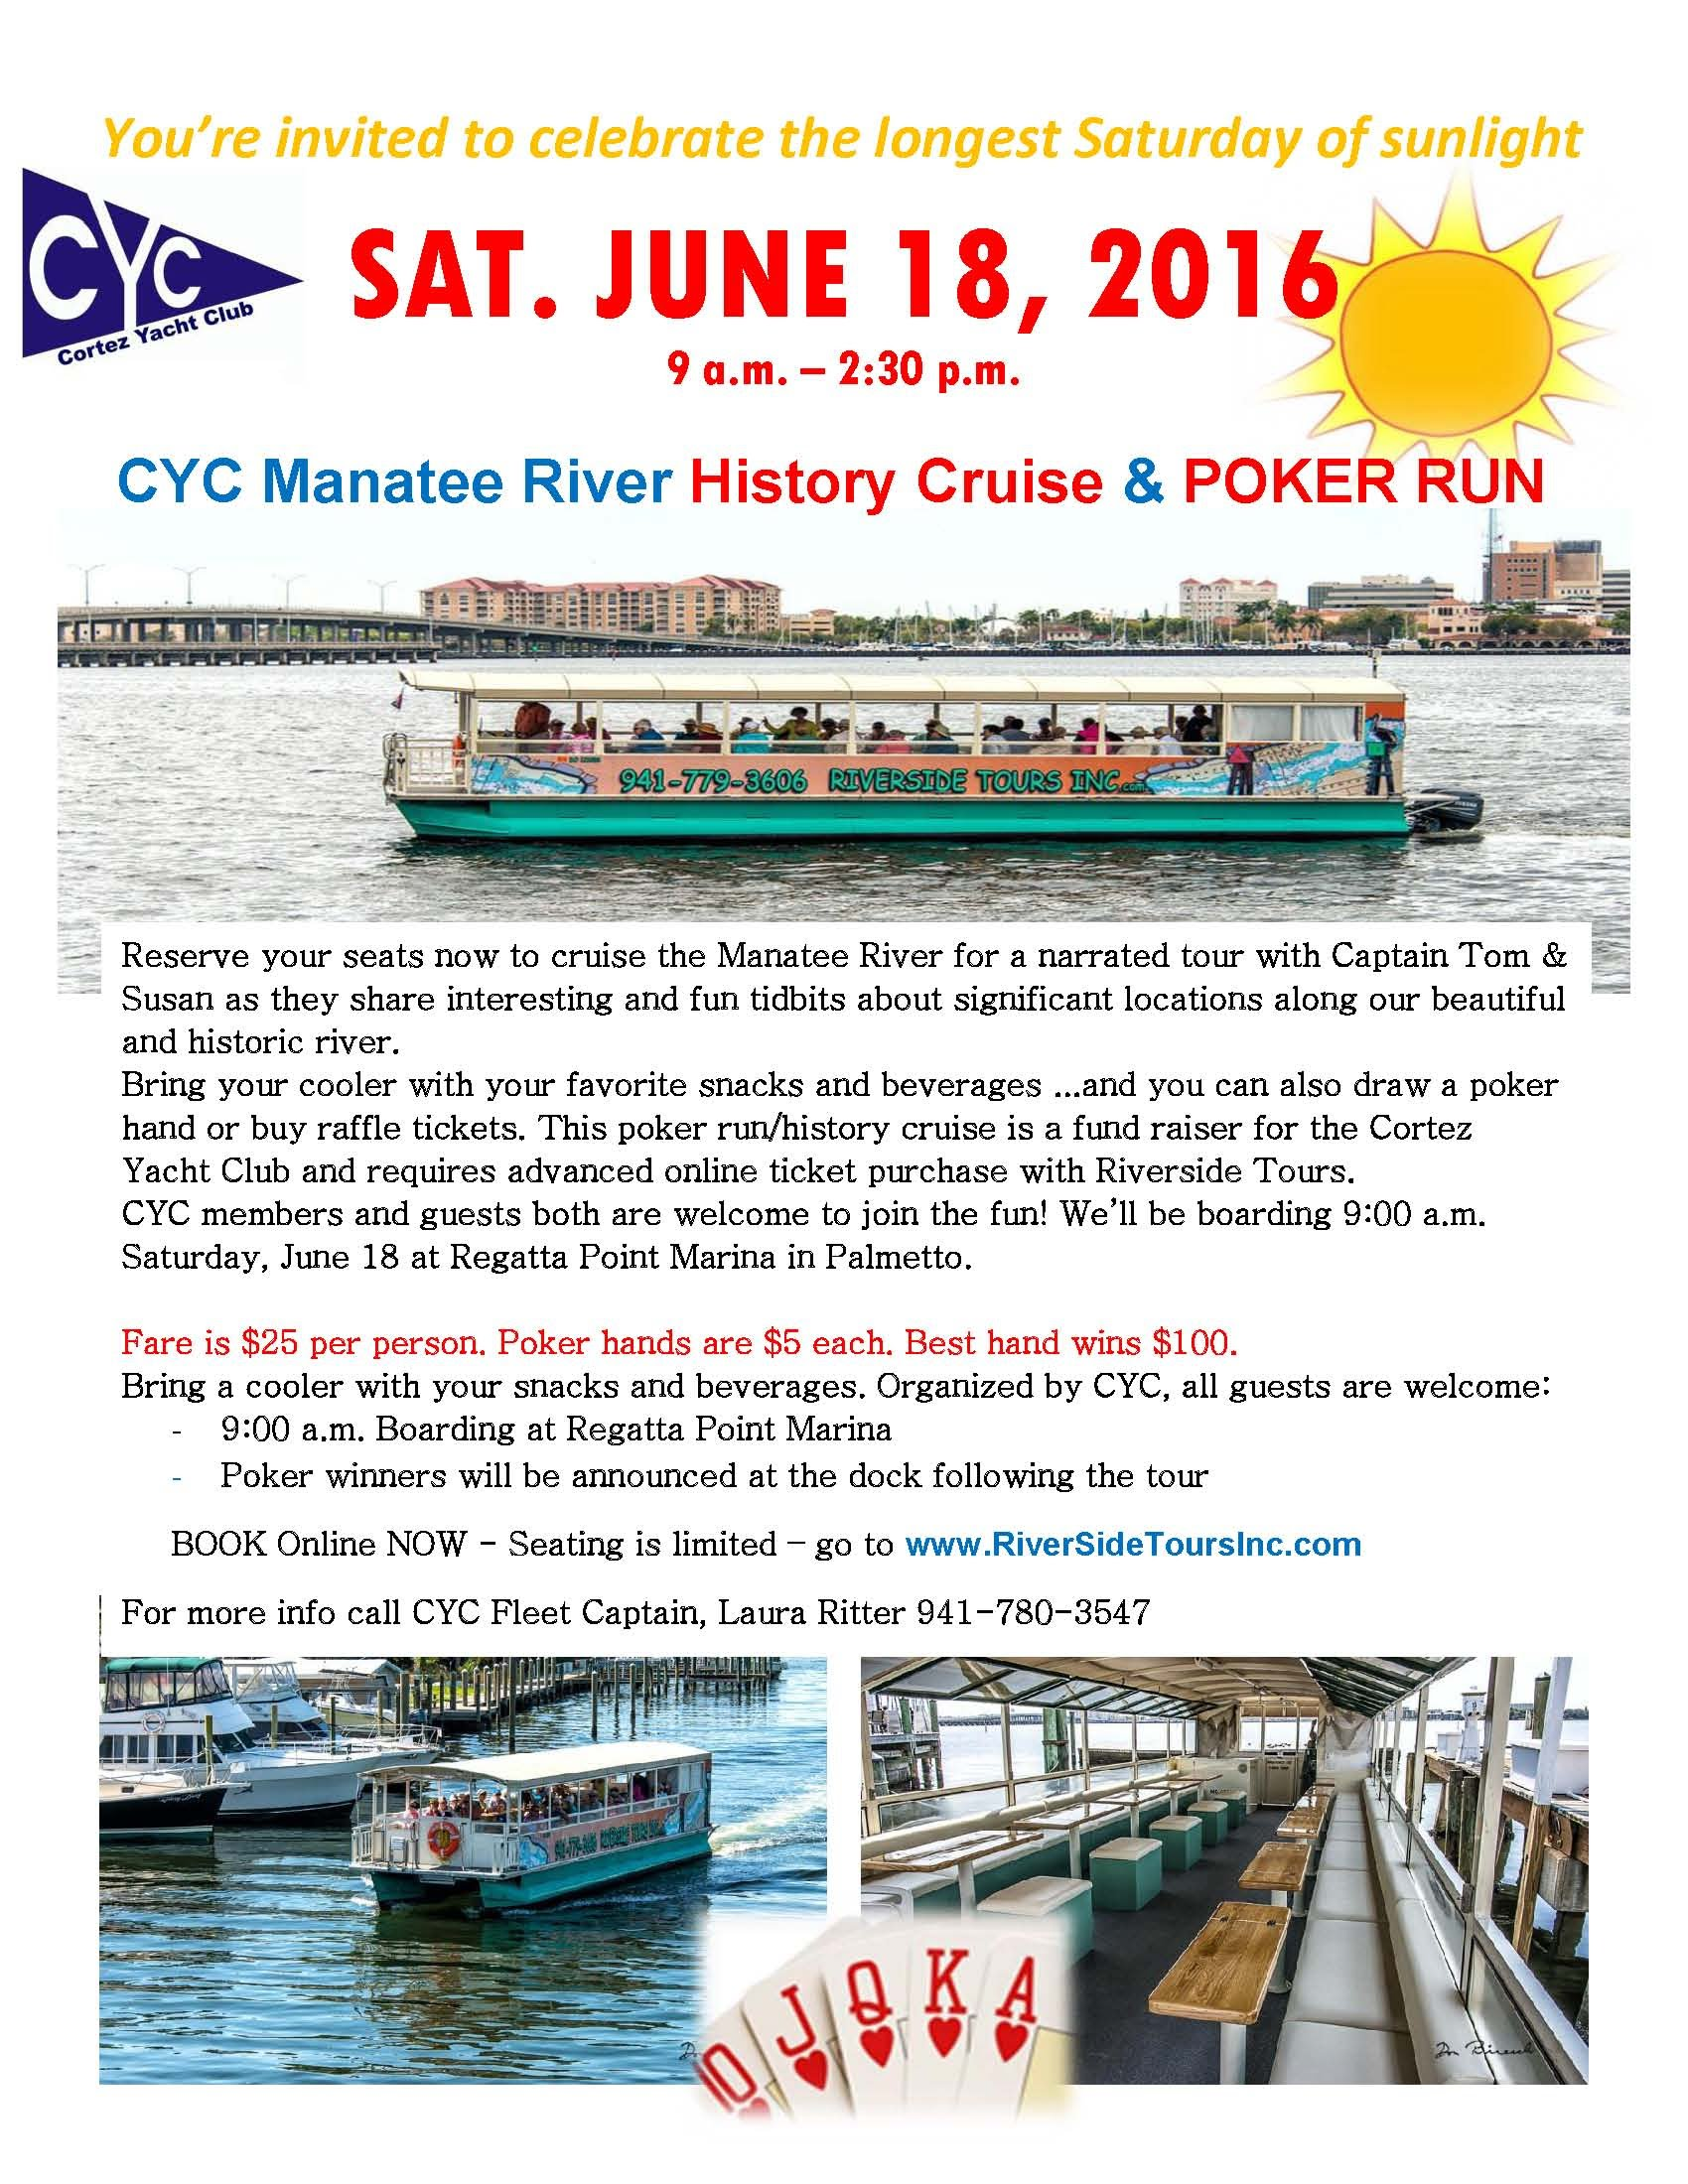 RIVERSIDE TOURS book now!